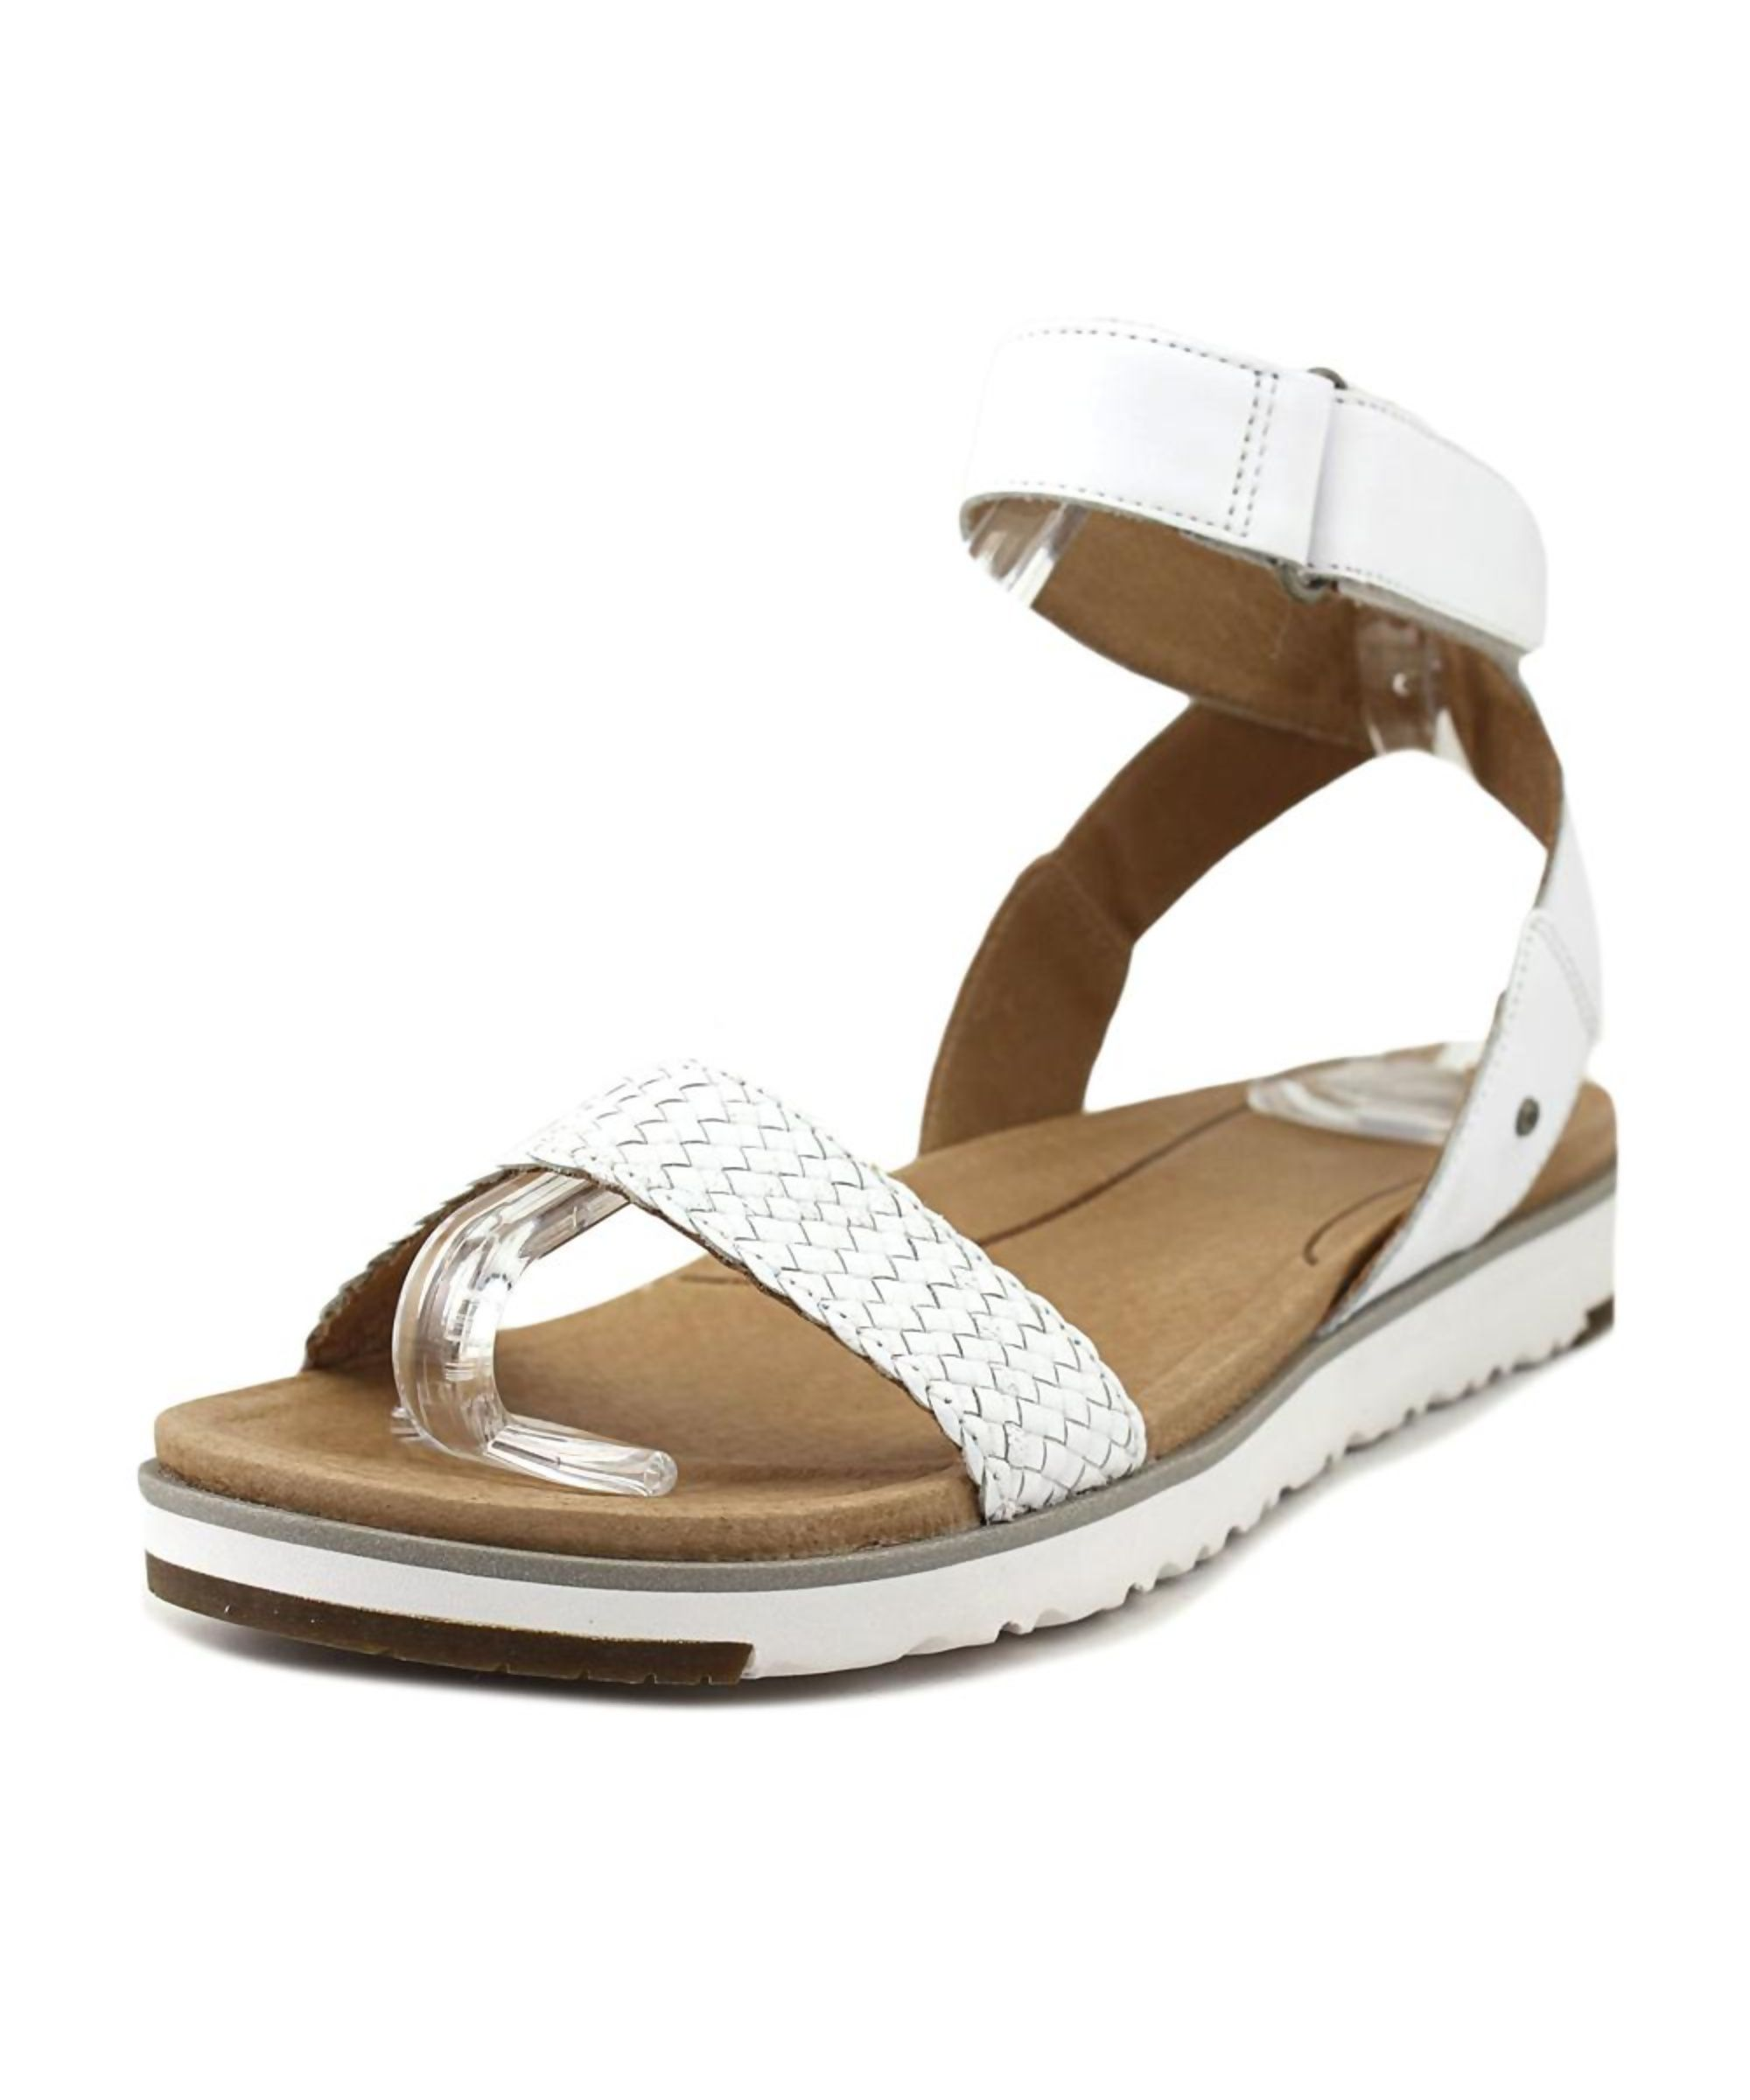 Buy Authentic Aster Womens Zig Zag Callisto Womens Sandals Dress Sandals